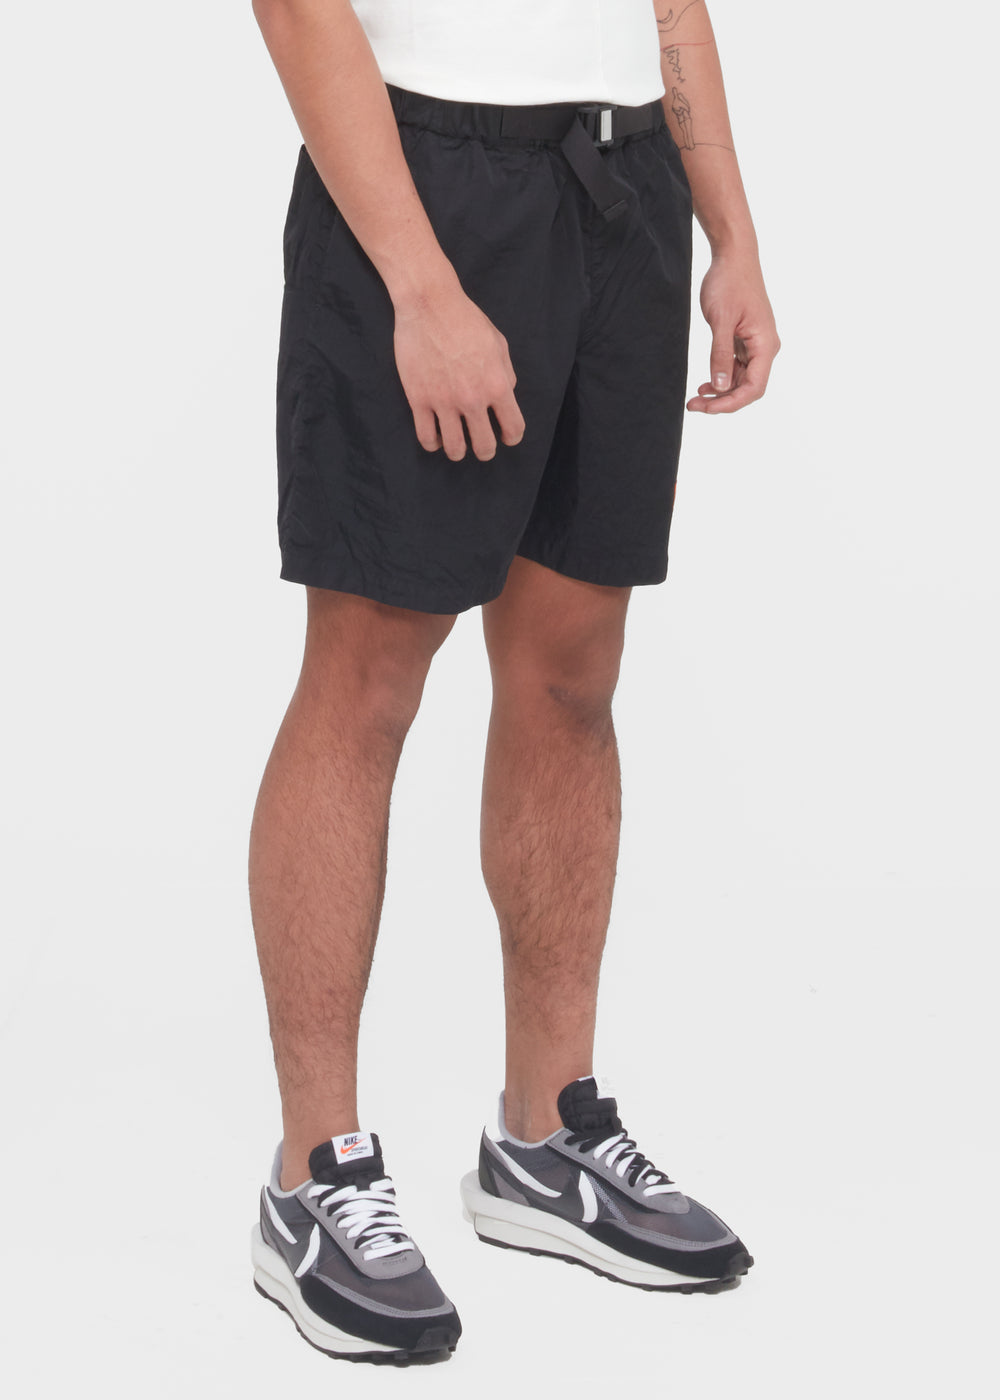 heron-preston-heron-buckle-shorts-hmcb007s208760061040-black-2